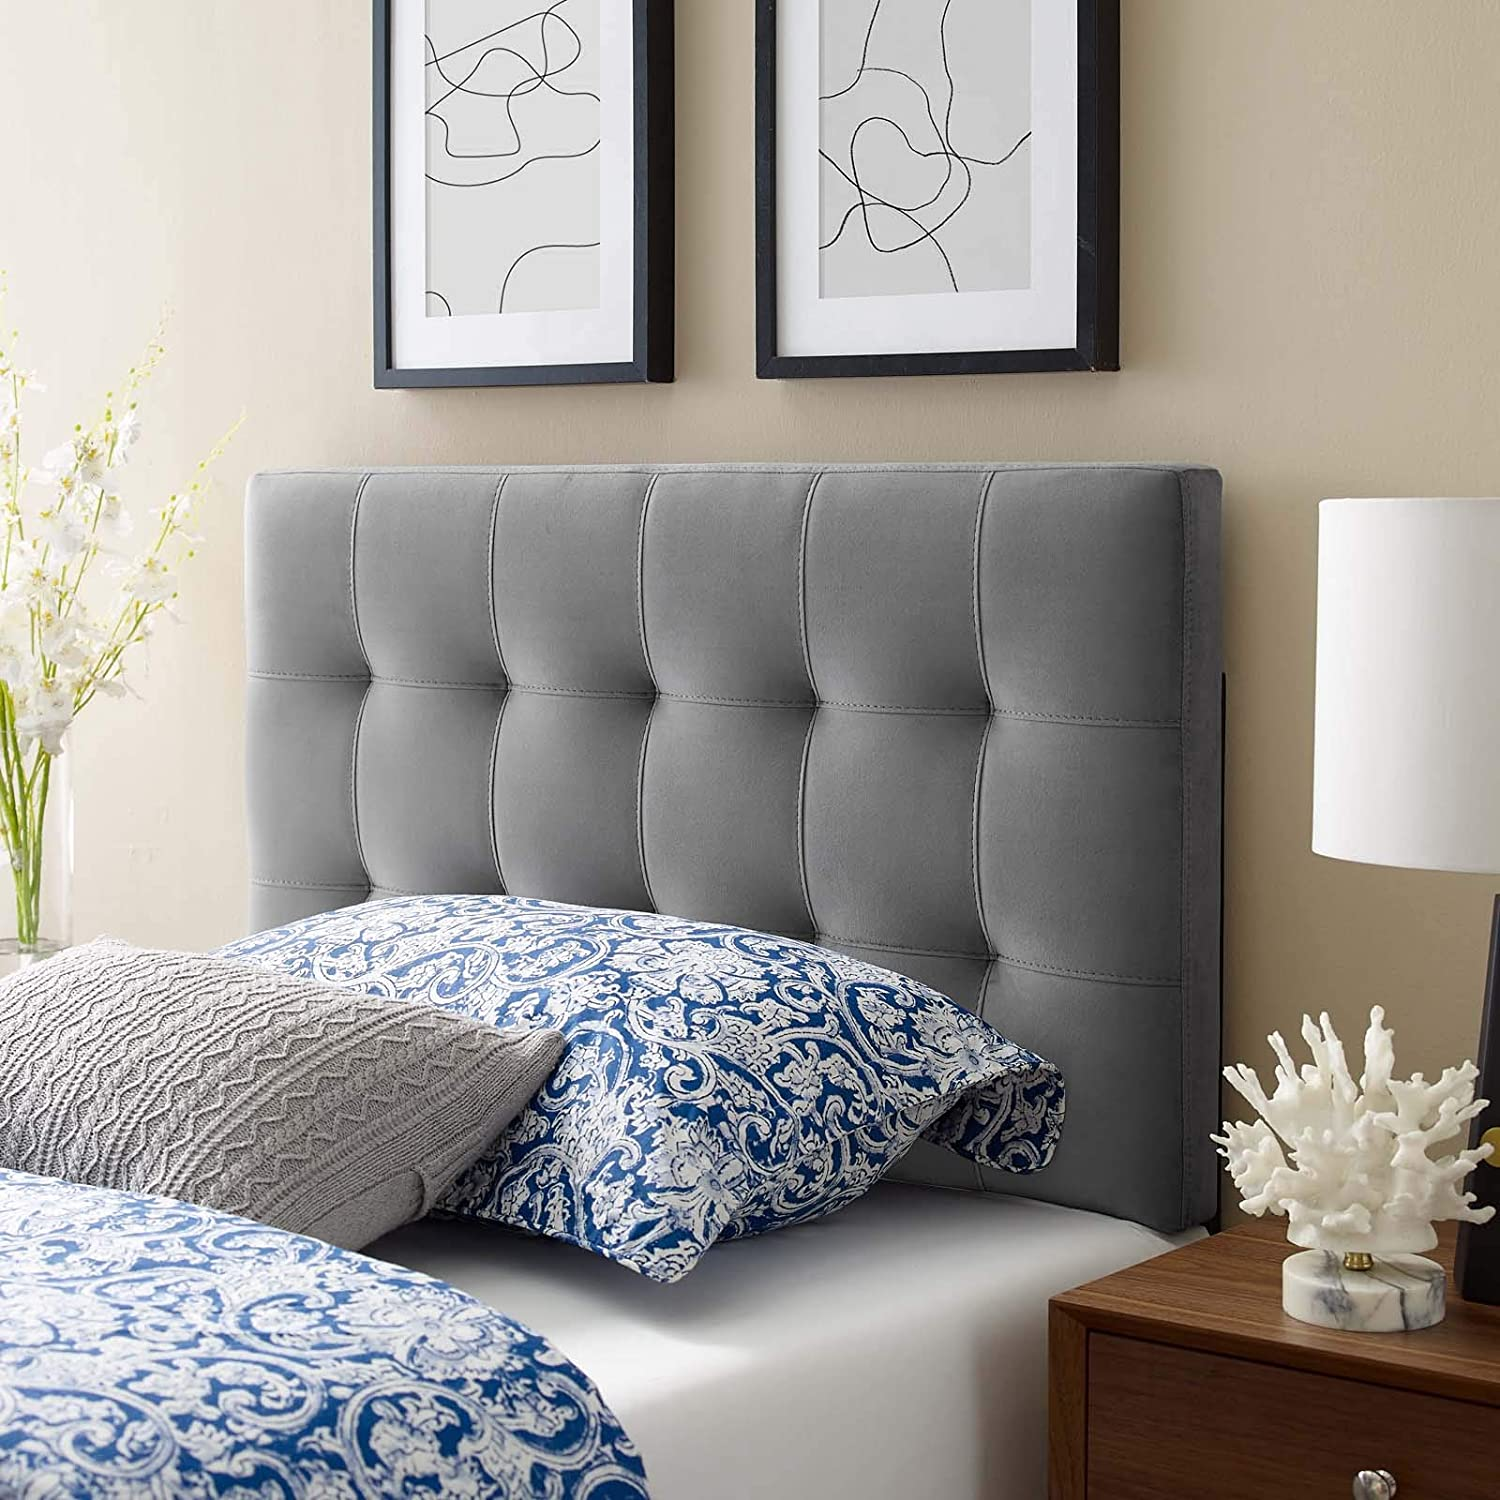 home decor ideas - tufted headboard for a sophisticated design